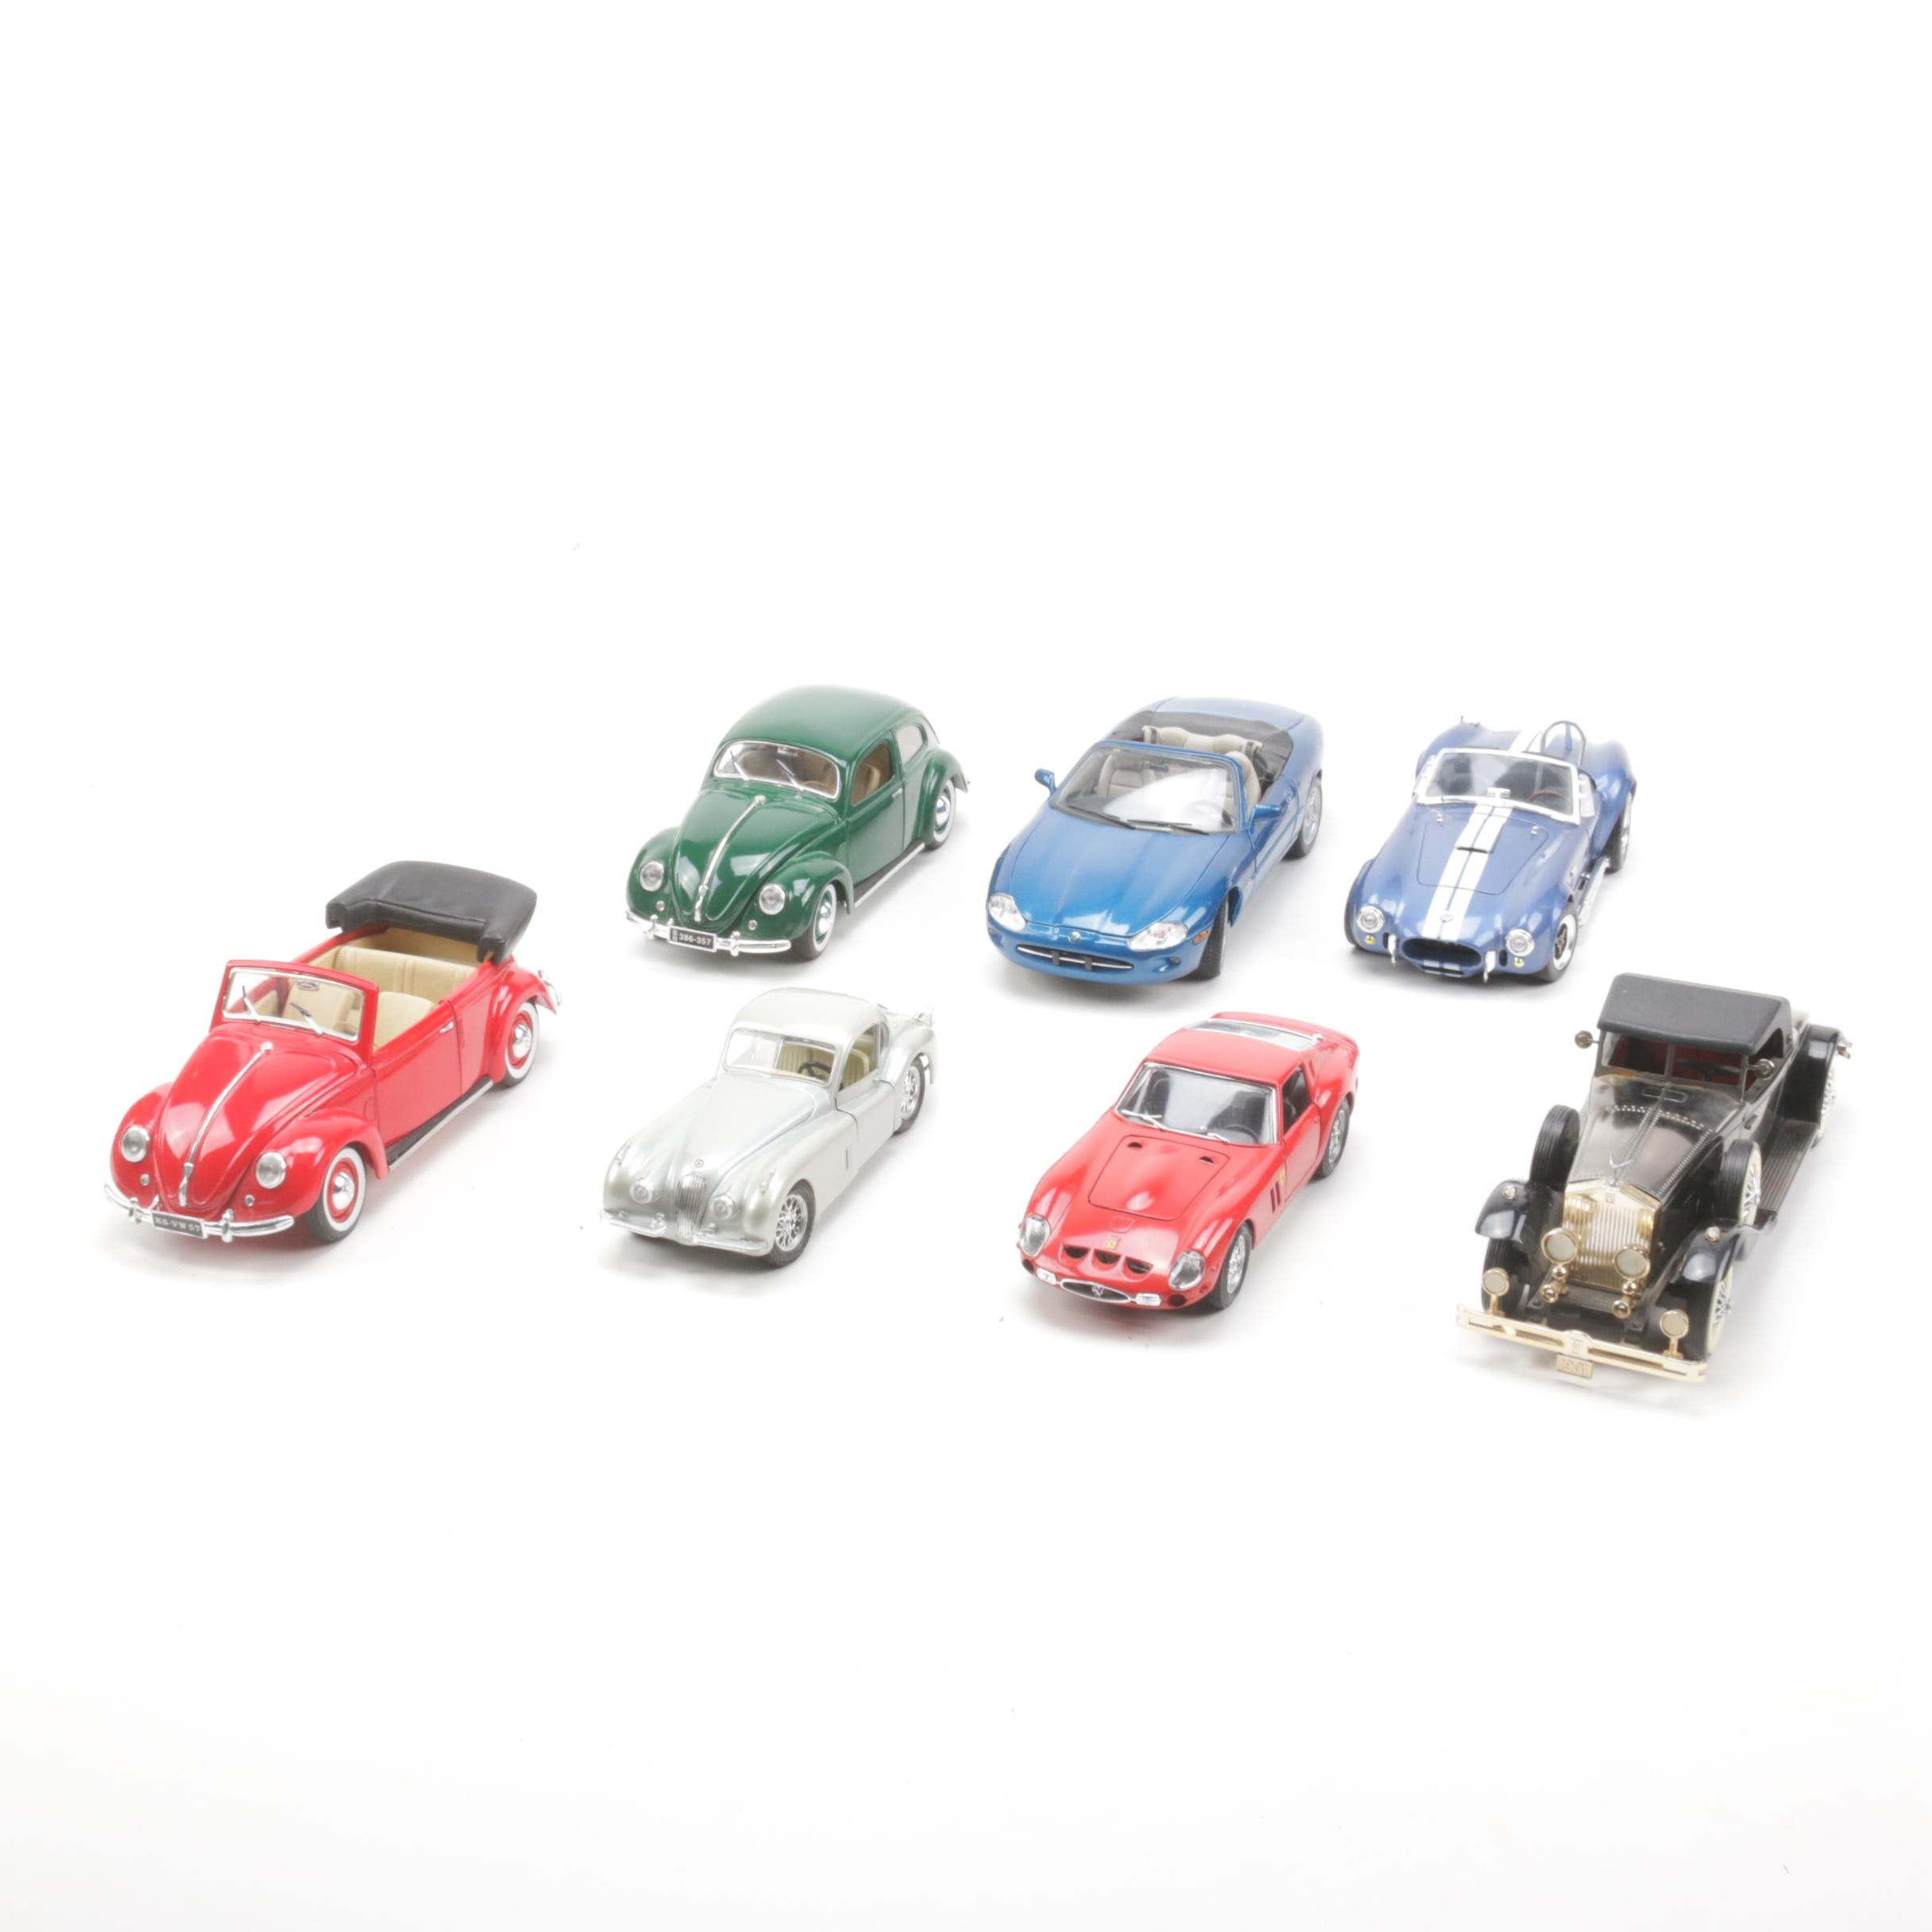 Die Cast Metal European Model Cars Including VW Bug